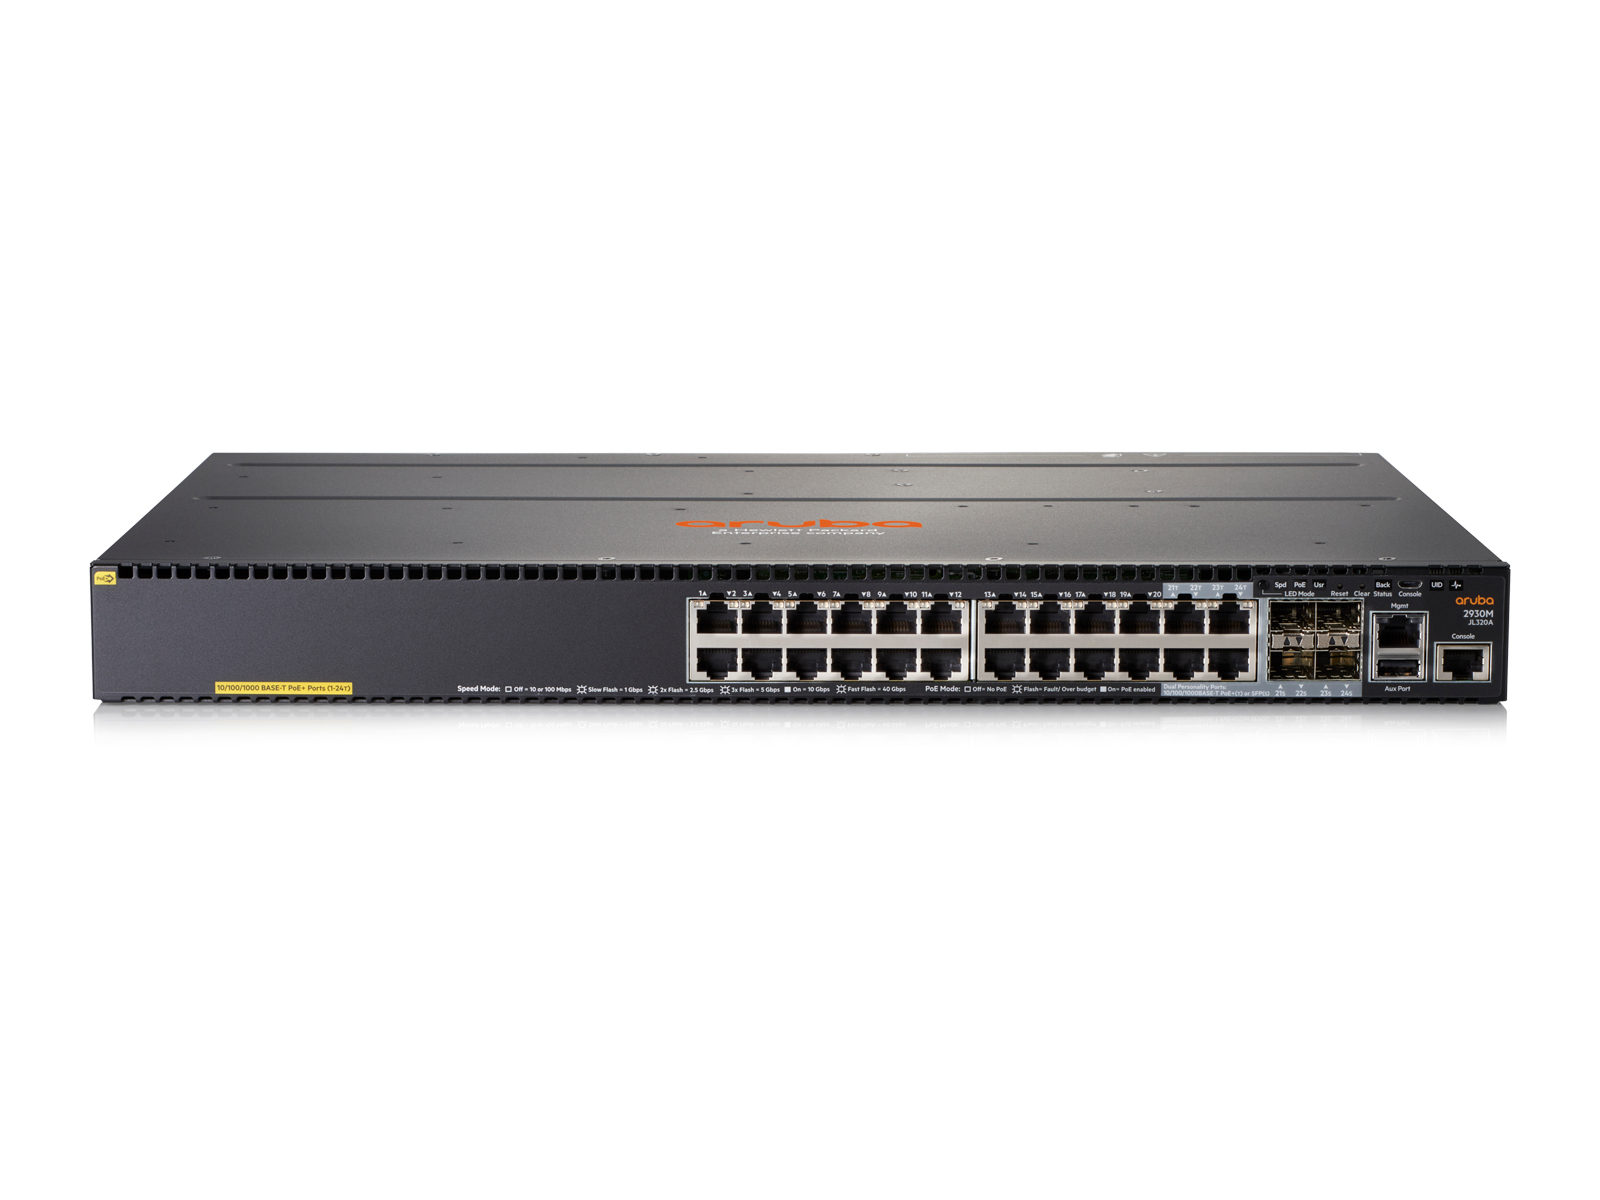 HPE JL320A ARUBA 2930M 24G POE+ 1-SLOT MANAGED L3 GIGABIT ETHERNET (10/100/1000) POWER OVER (POE) 1U GREY